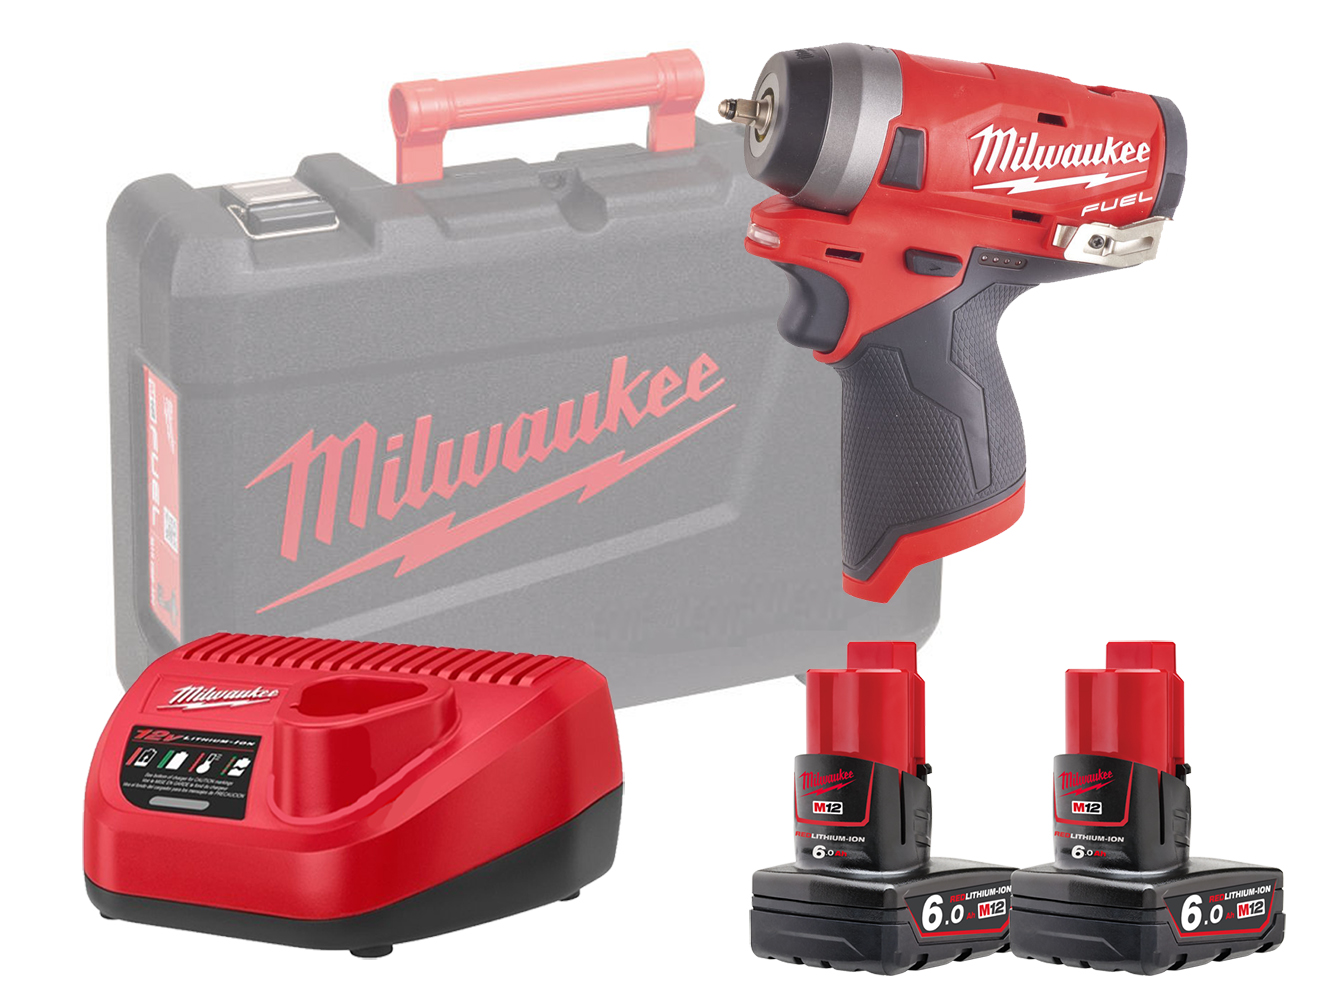 Milwaukee M12FIW14 12V Fuel Compact Impact Wrench 1/4In - 6.0Ah Pack